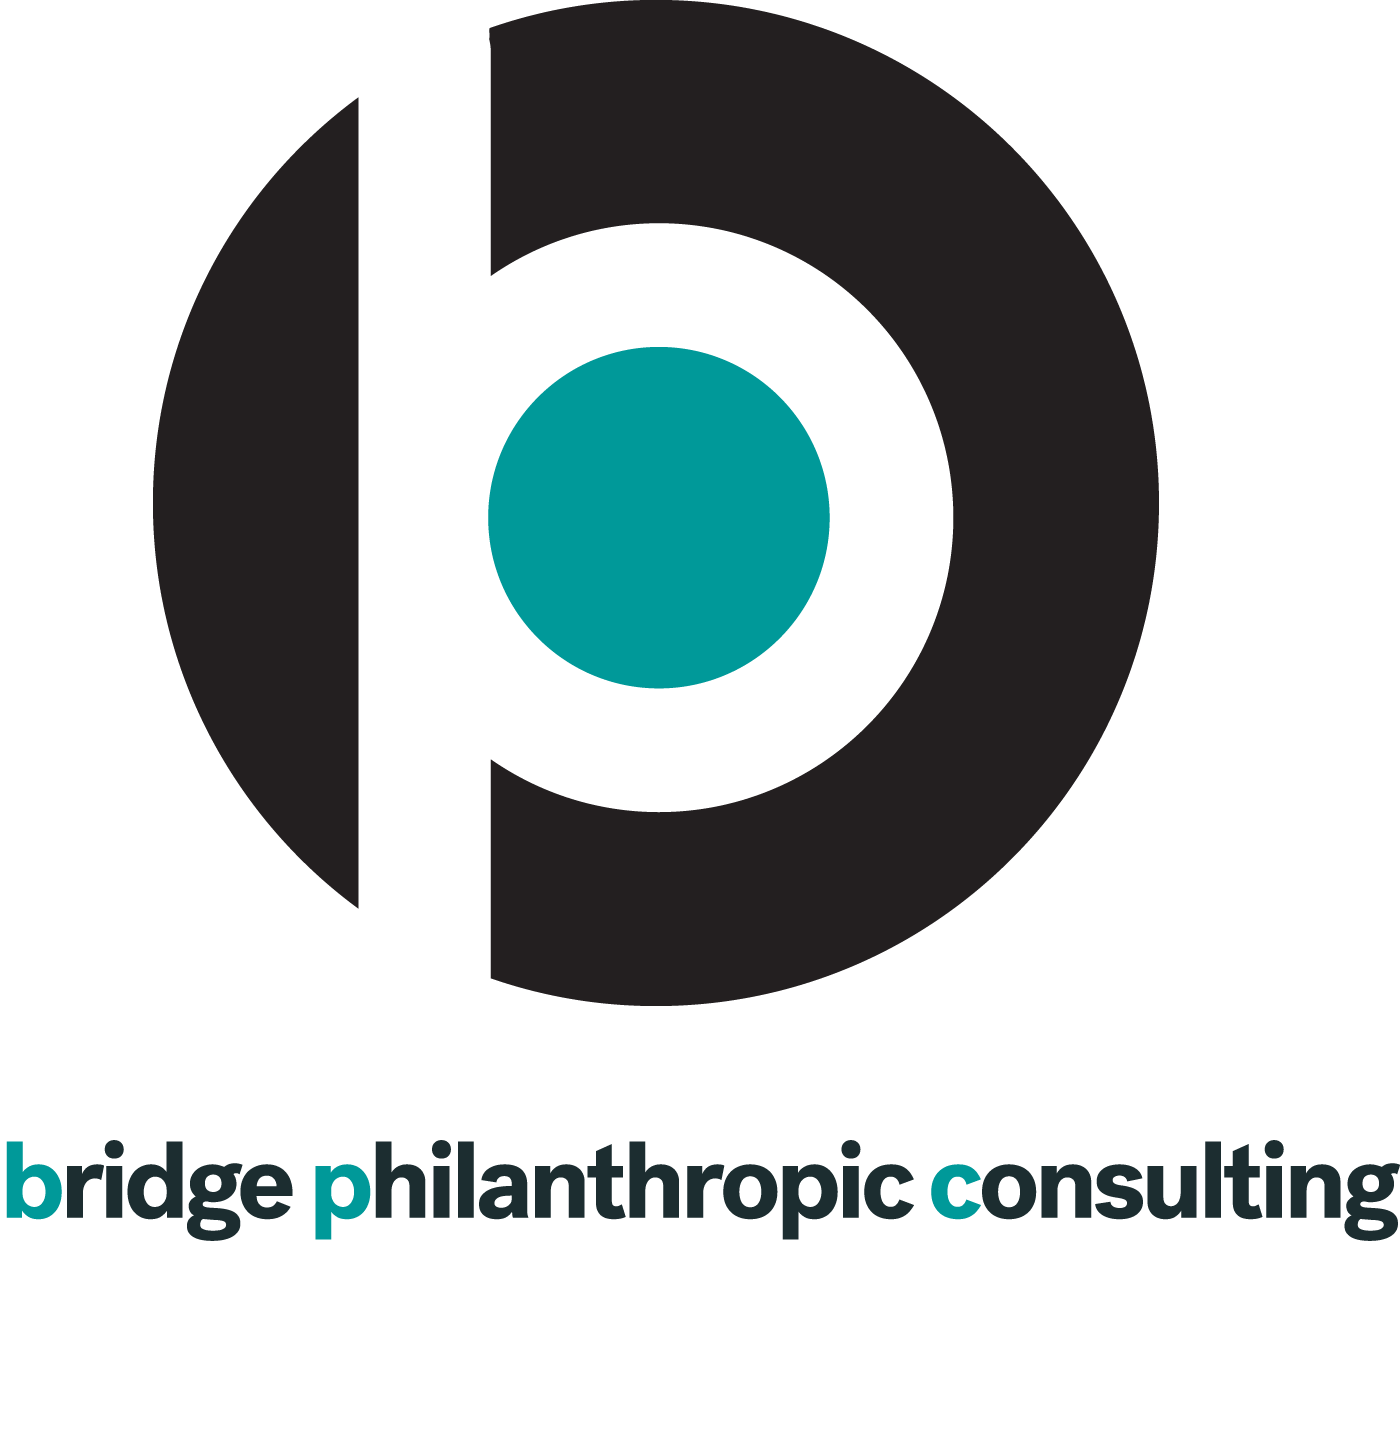 Bridge Philantrophic Consulting